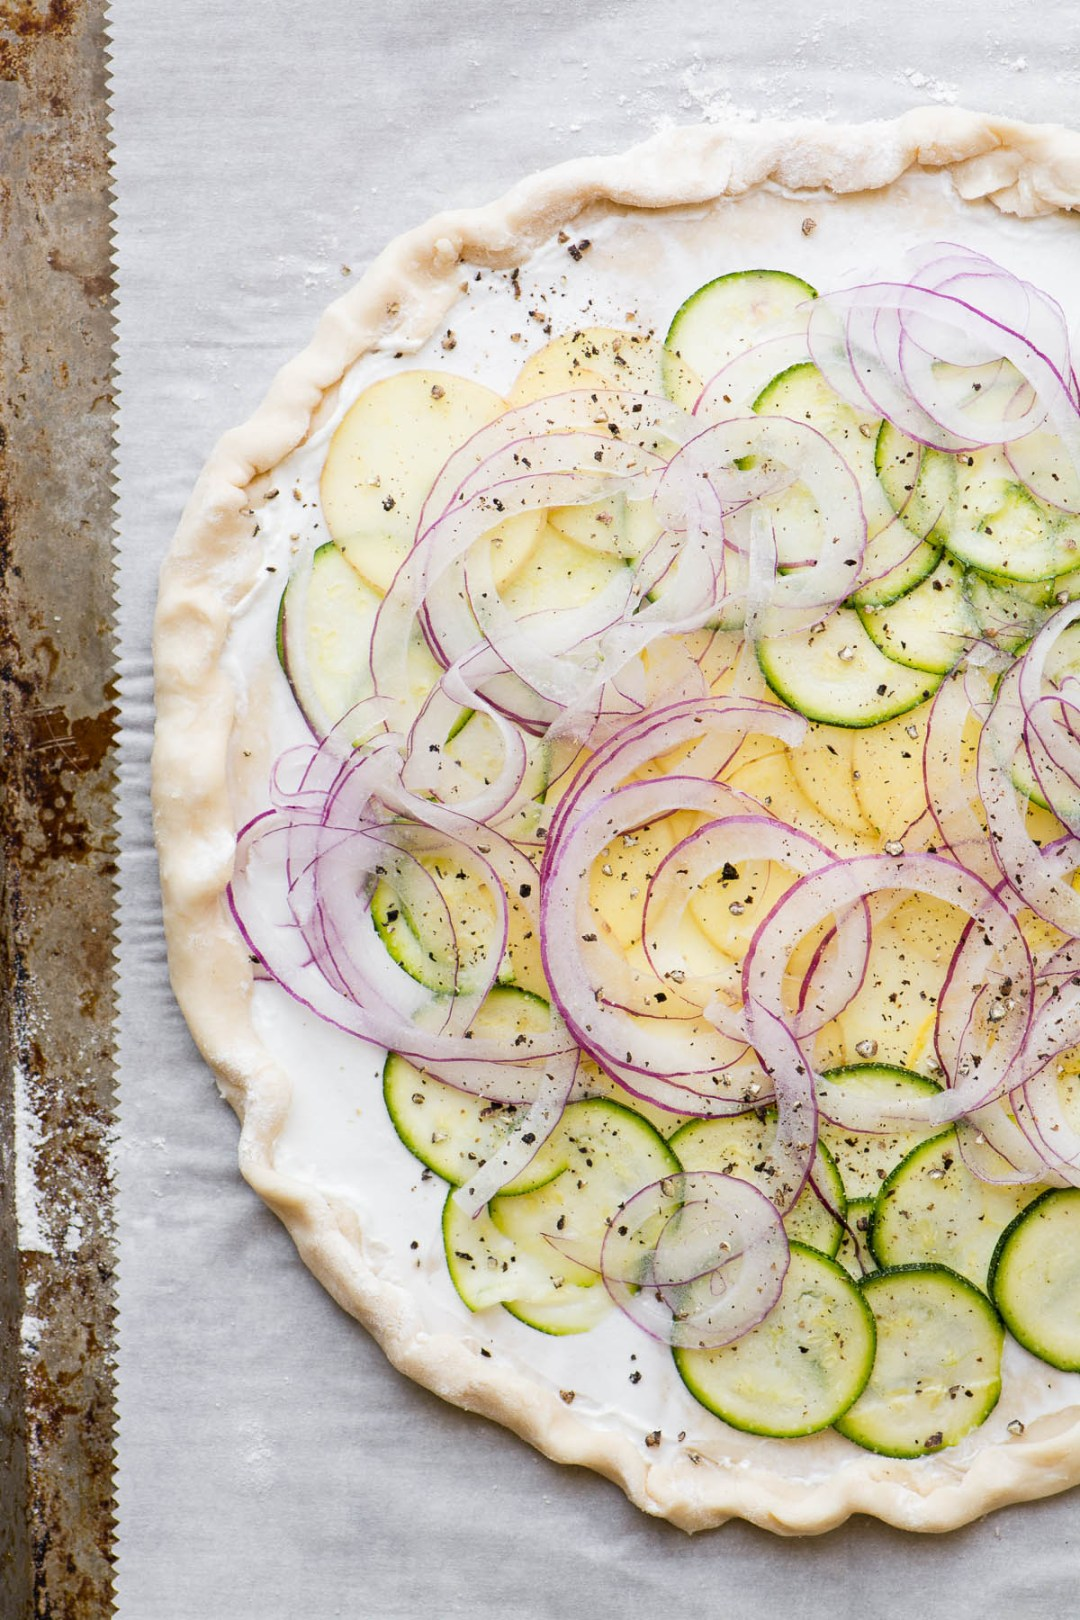 savory goat cheese and summer squash tart ready to bake